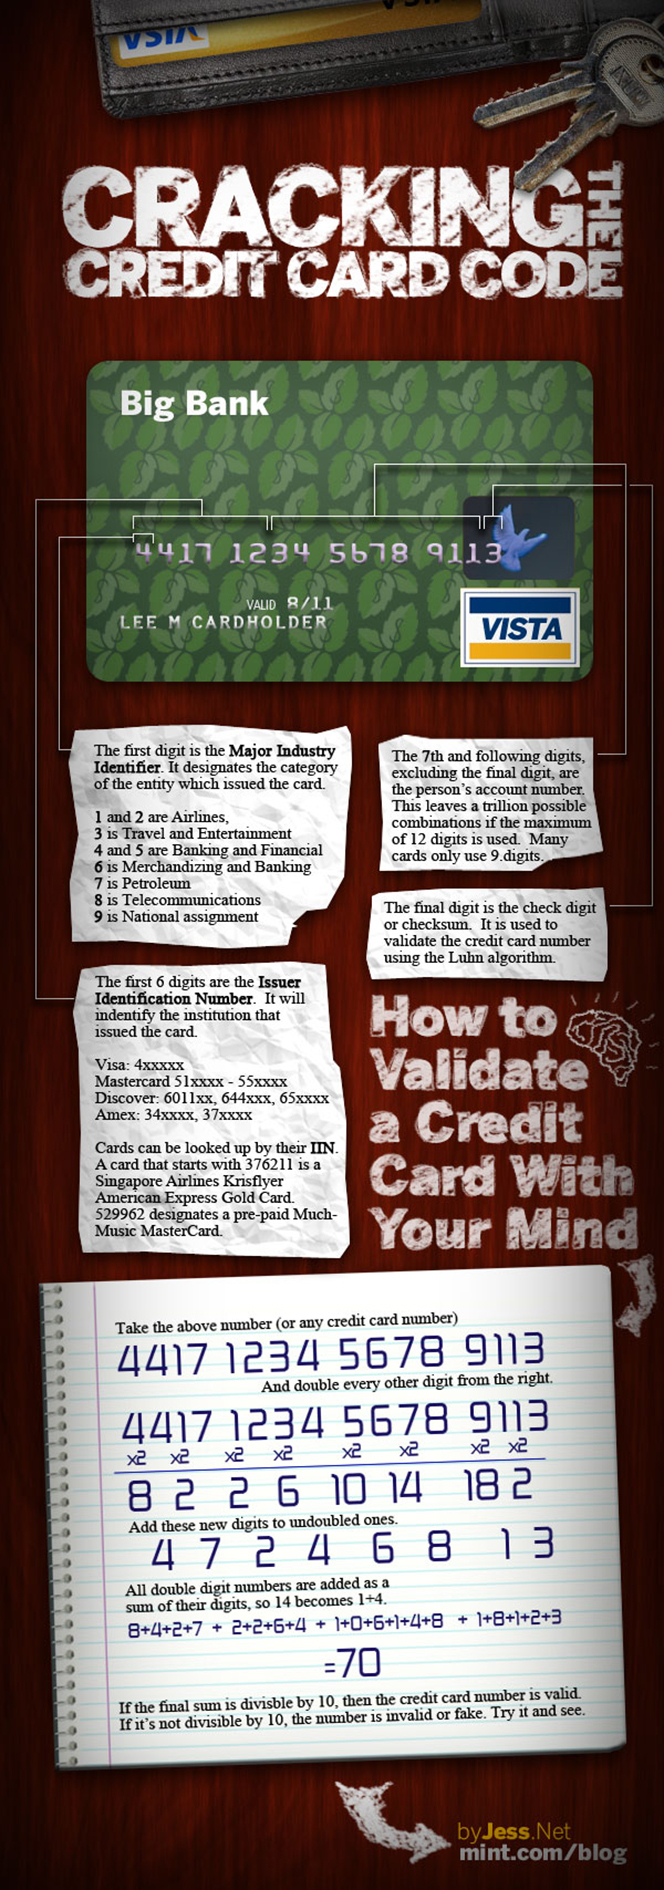 What's in Your Credit Card Number?